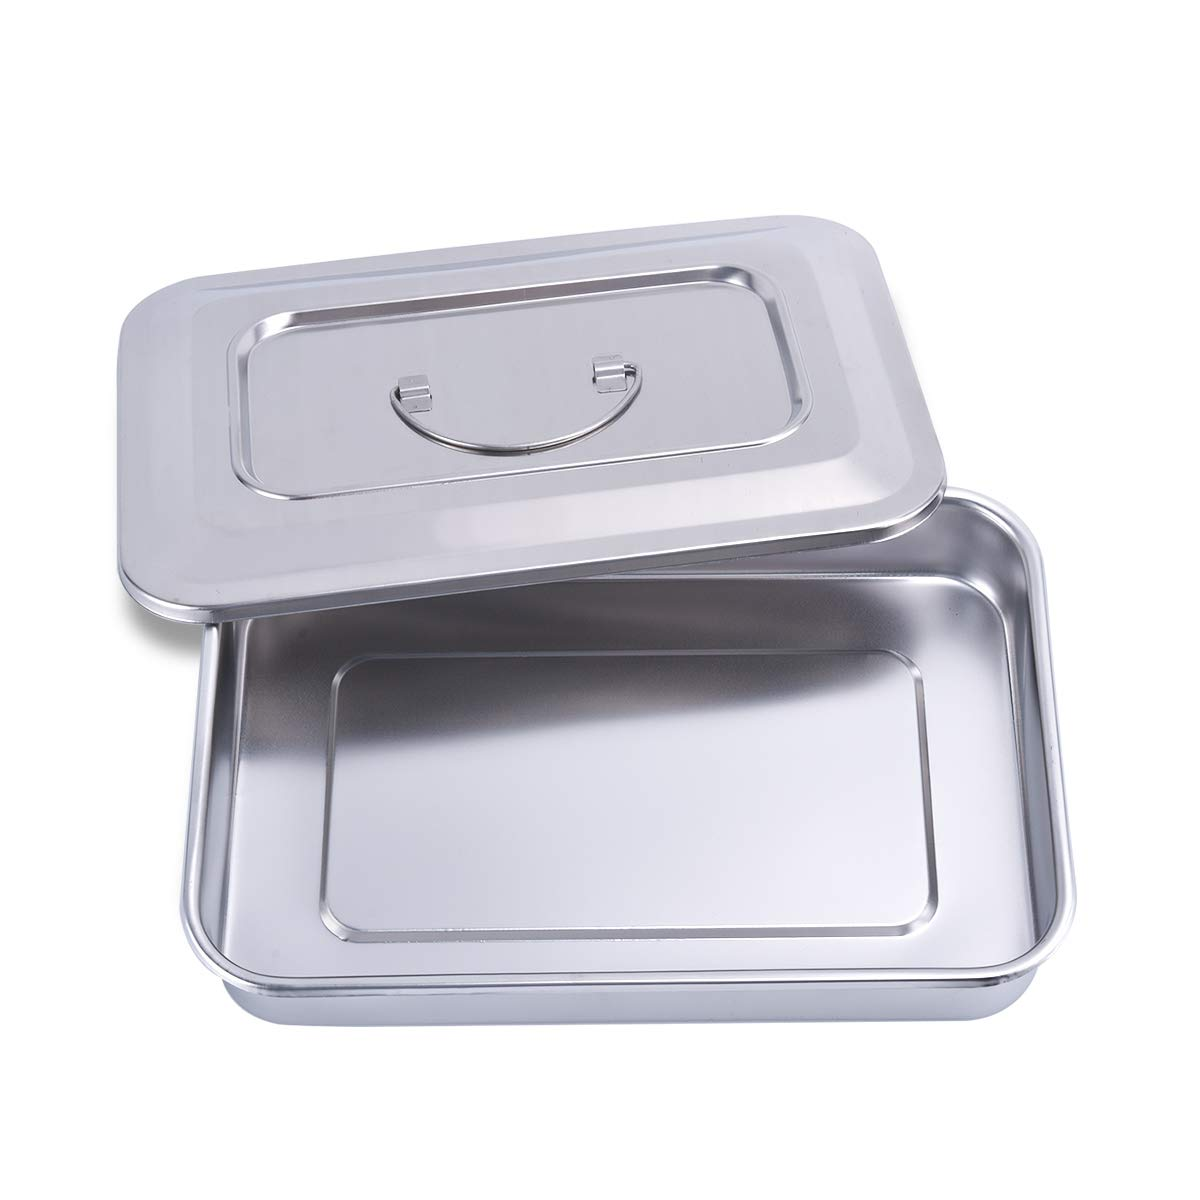 iplusmile 1 Set Medical Tray Stainless Steel Instrument Tray Surgical Tray for Doctor Nurse Hospital Medical Use